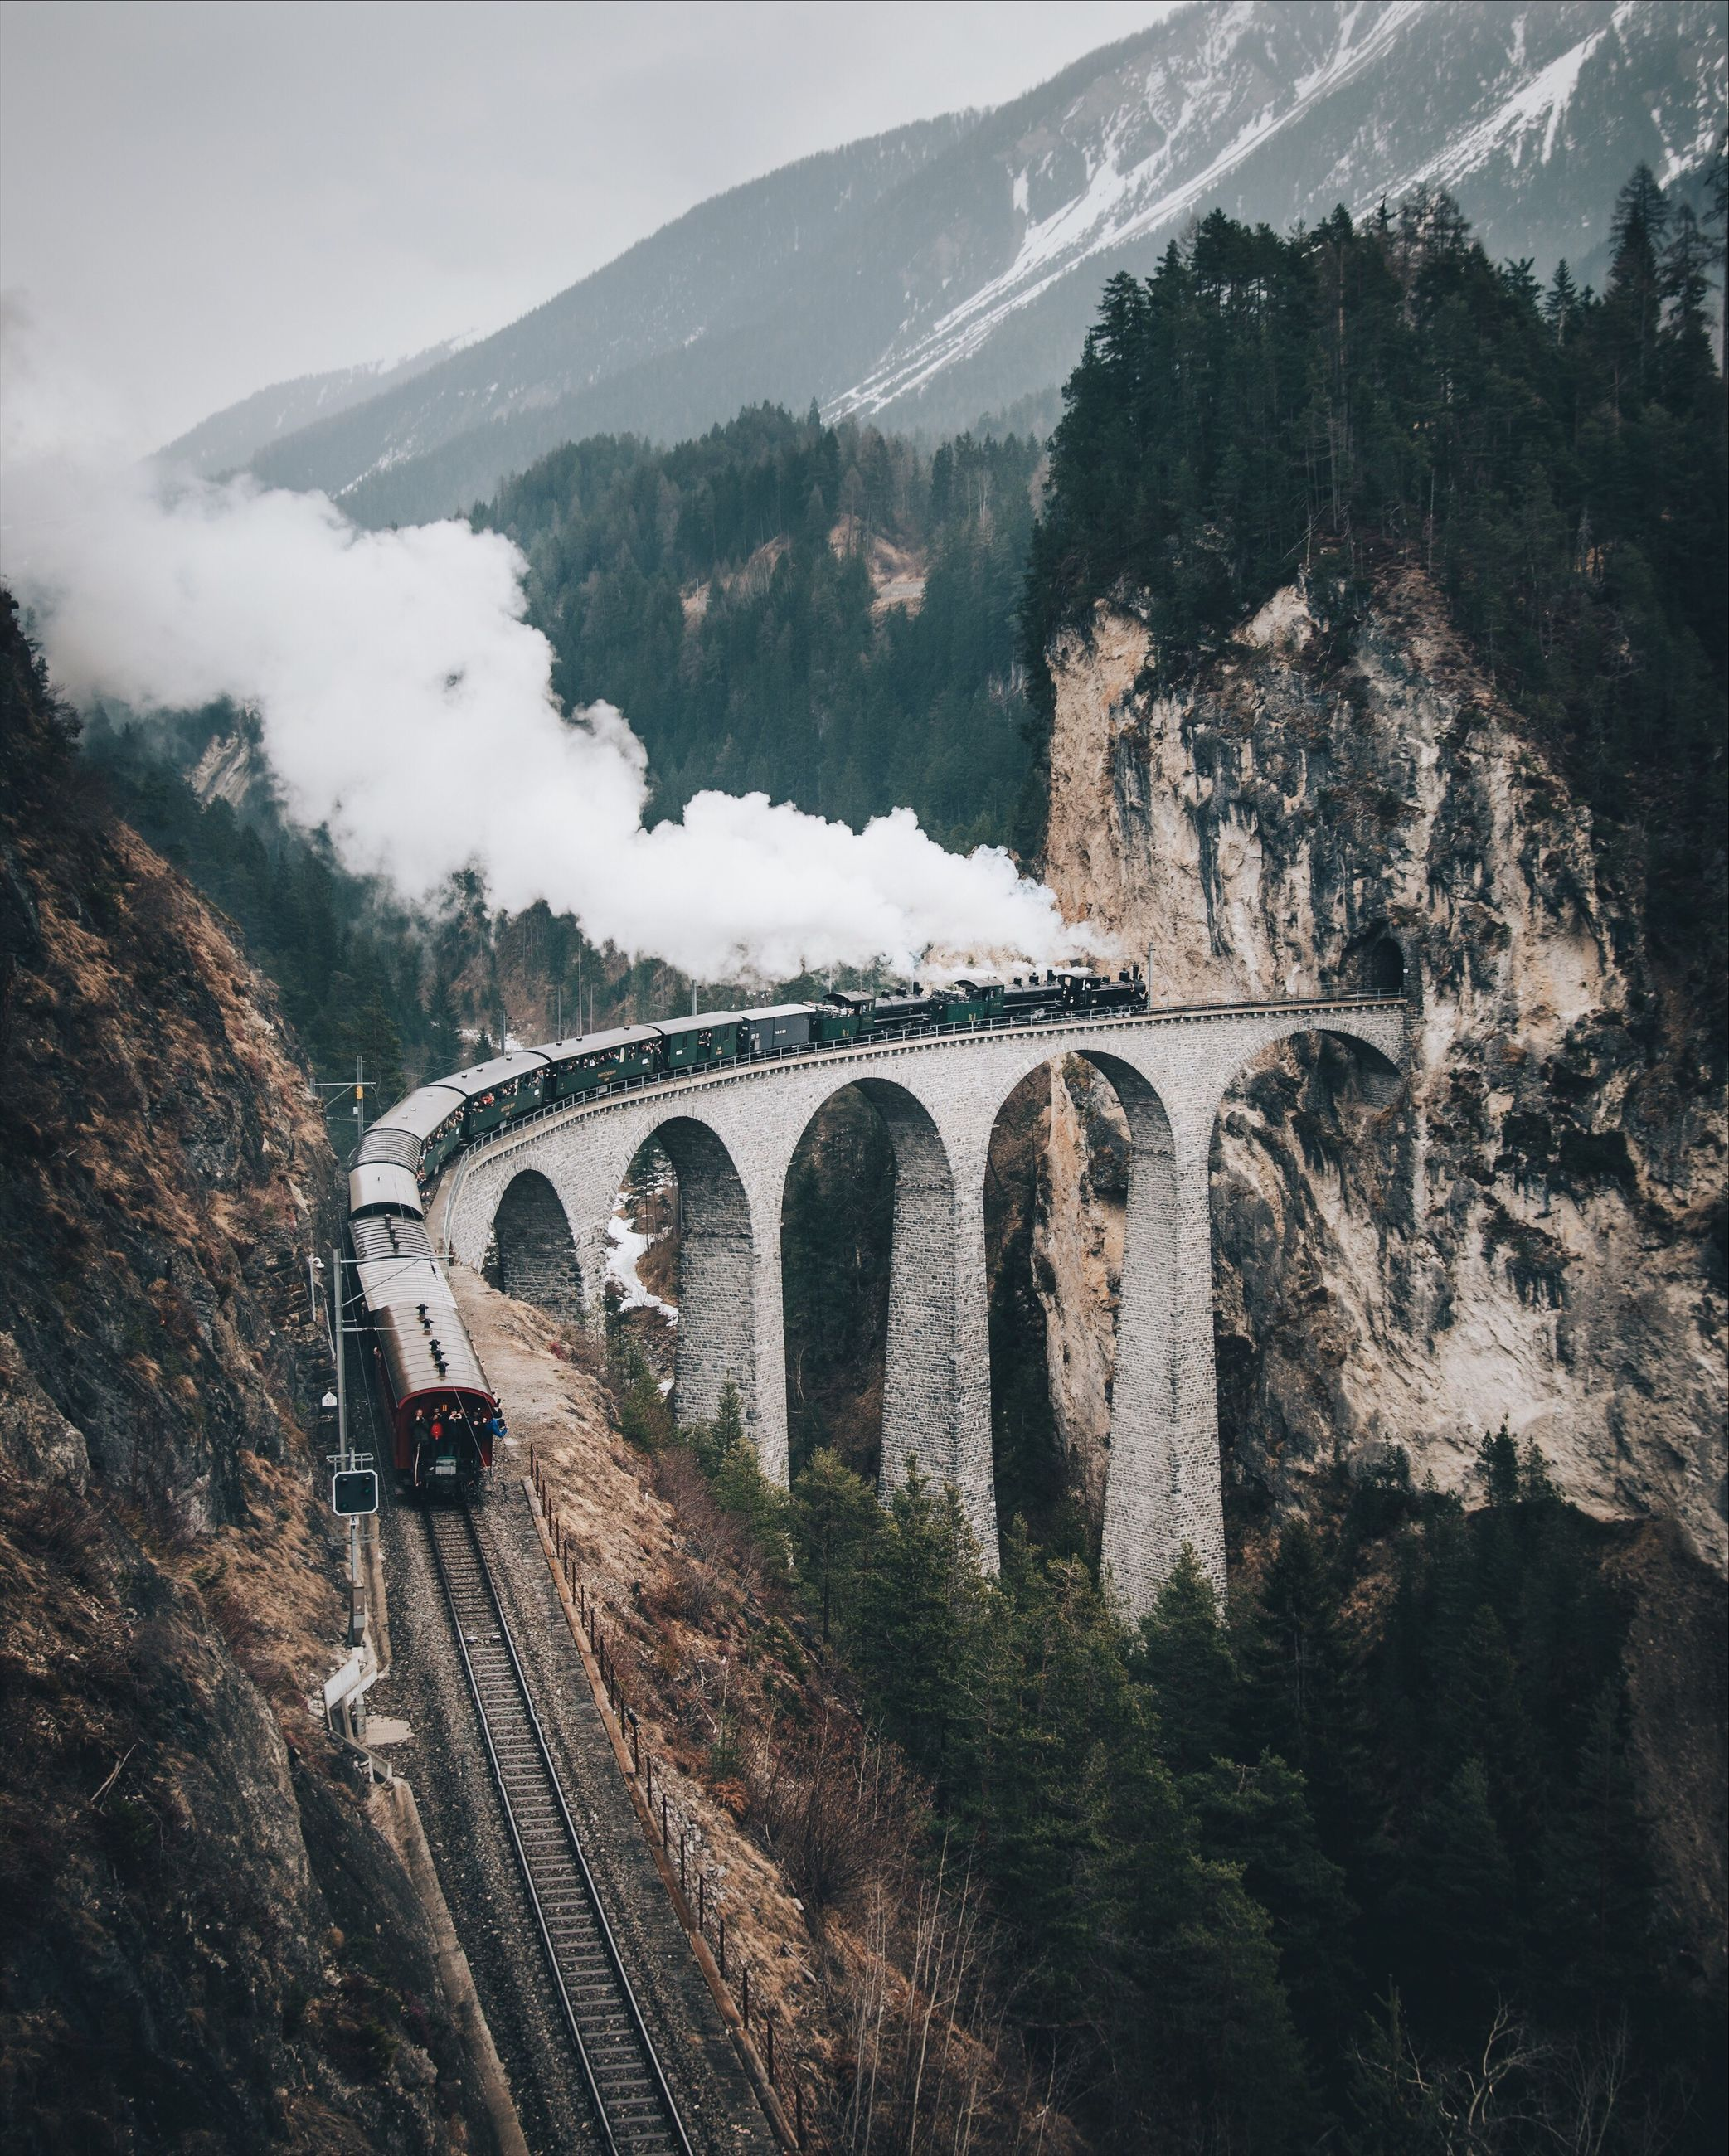 built structure, arch, nature, architecture, bridge - man made structure, outdoors, no people, beauty in nature, connection, day, motion, tree, water, scenics, sky